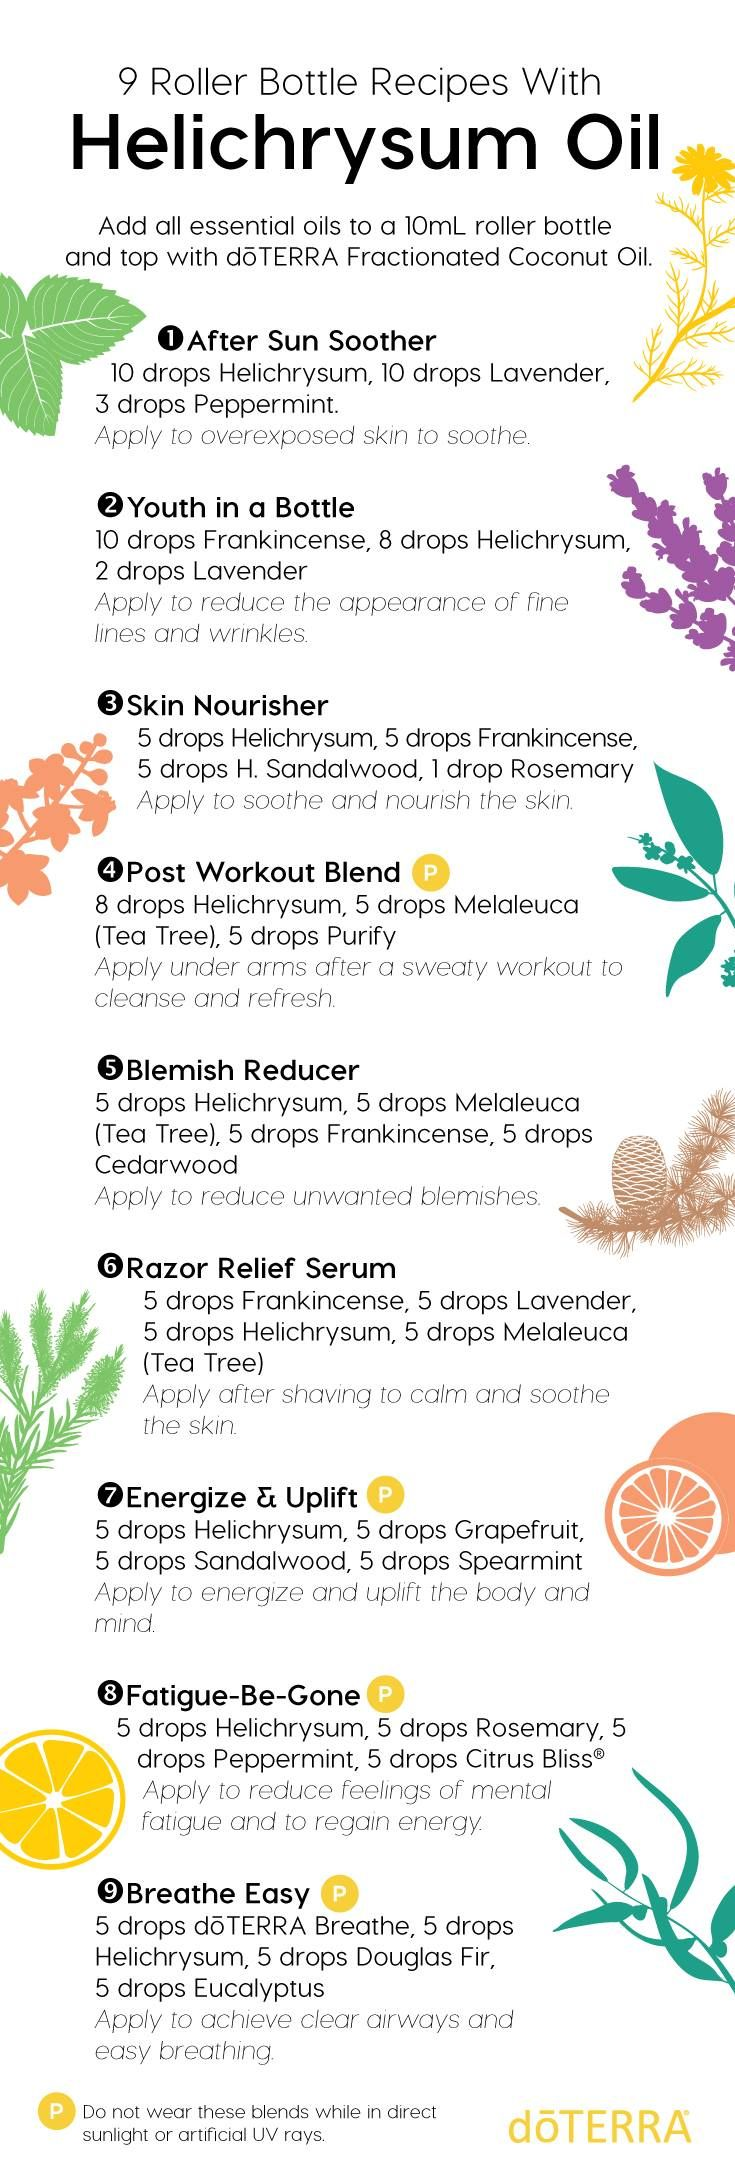 Create your own DIY Roller Bottle Recipes with Helichrysum! Which one will you try today?